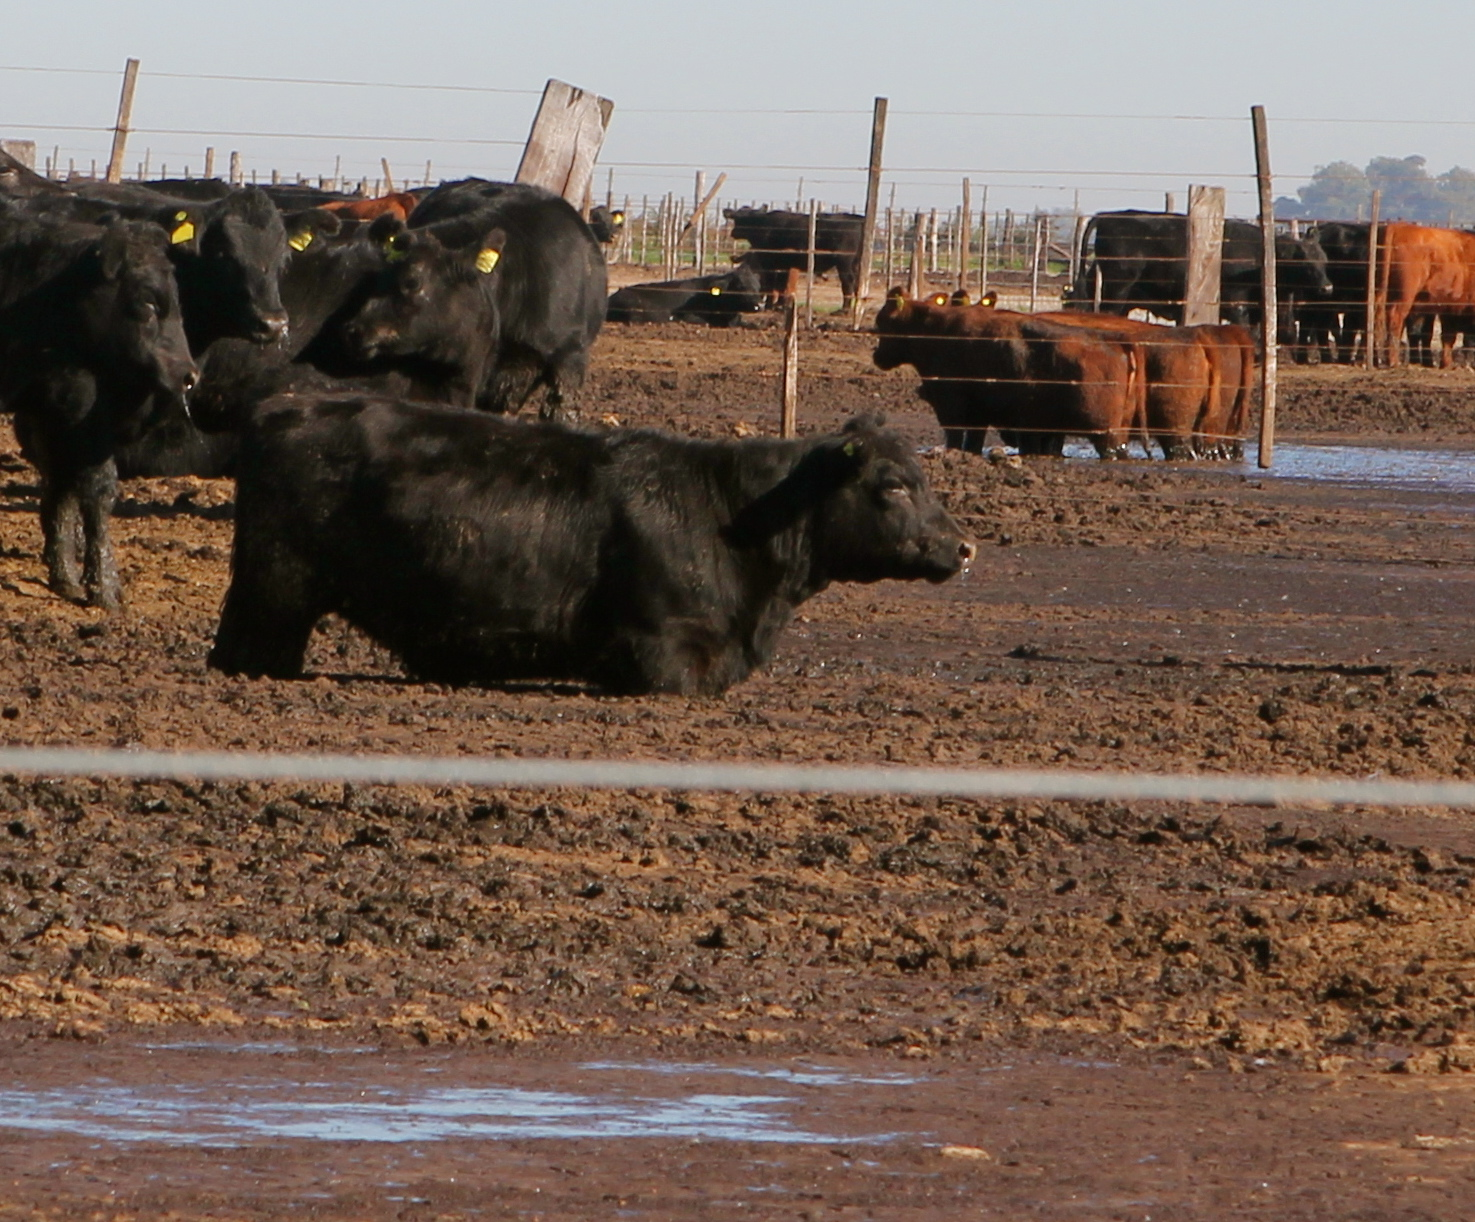 cows in thick mud feedlot 6